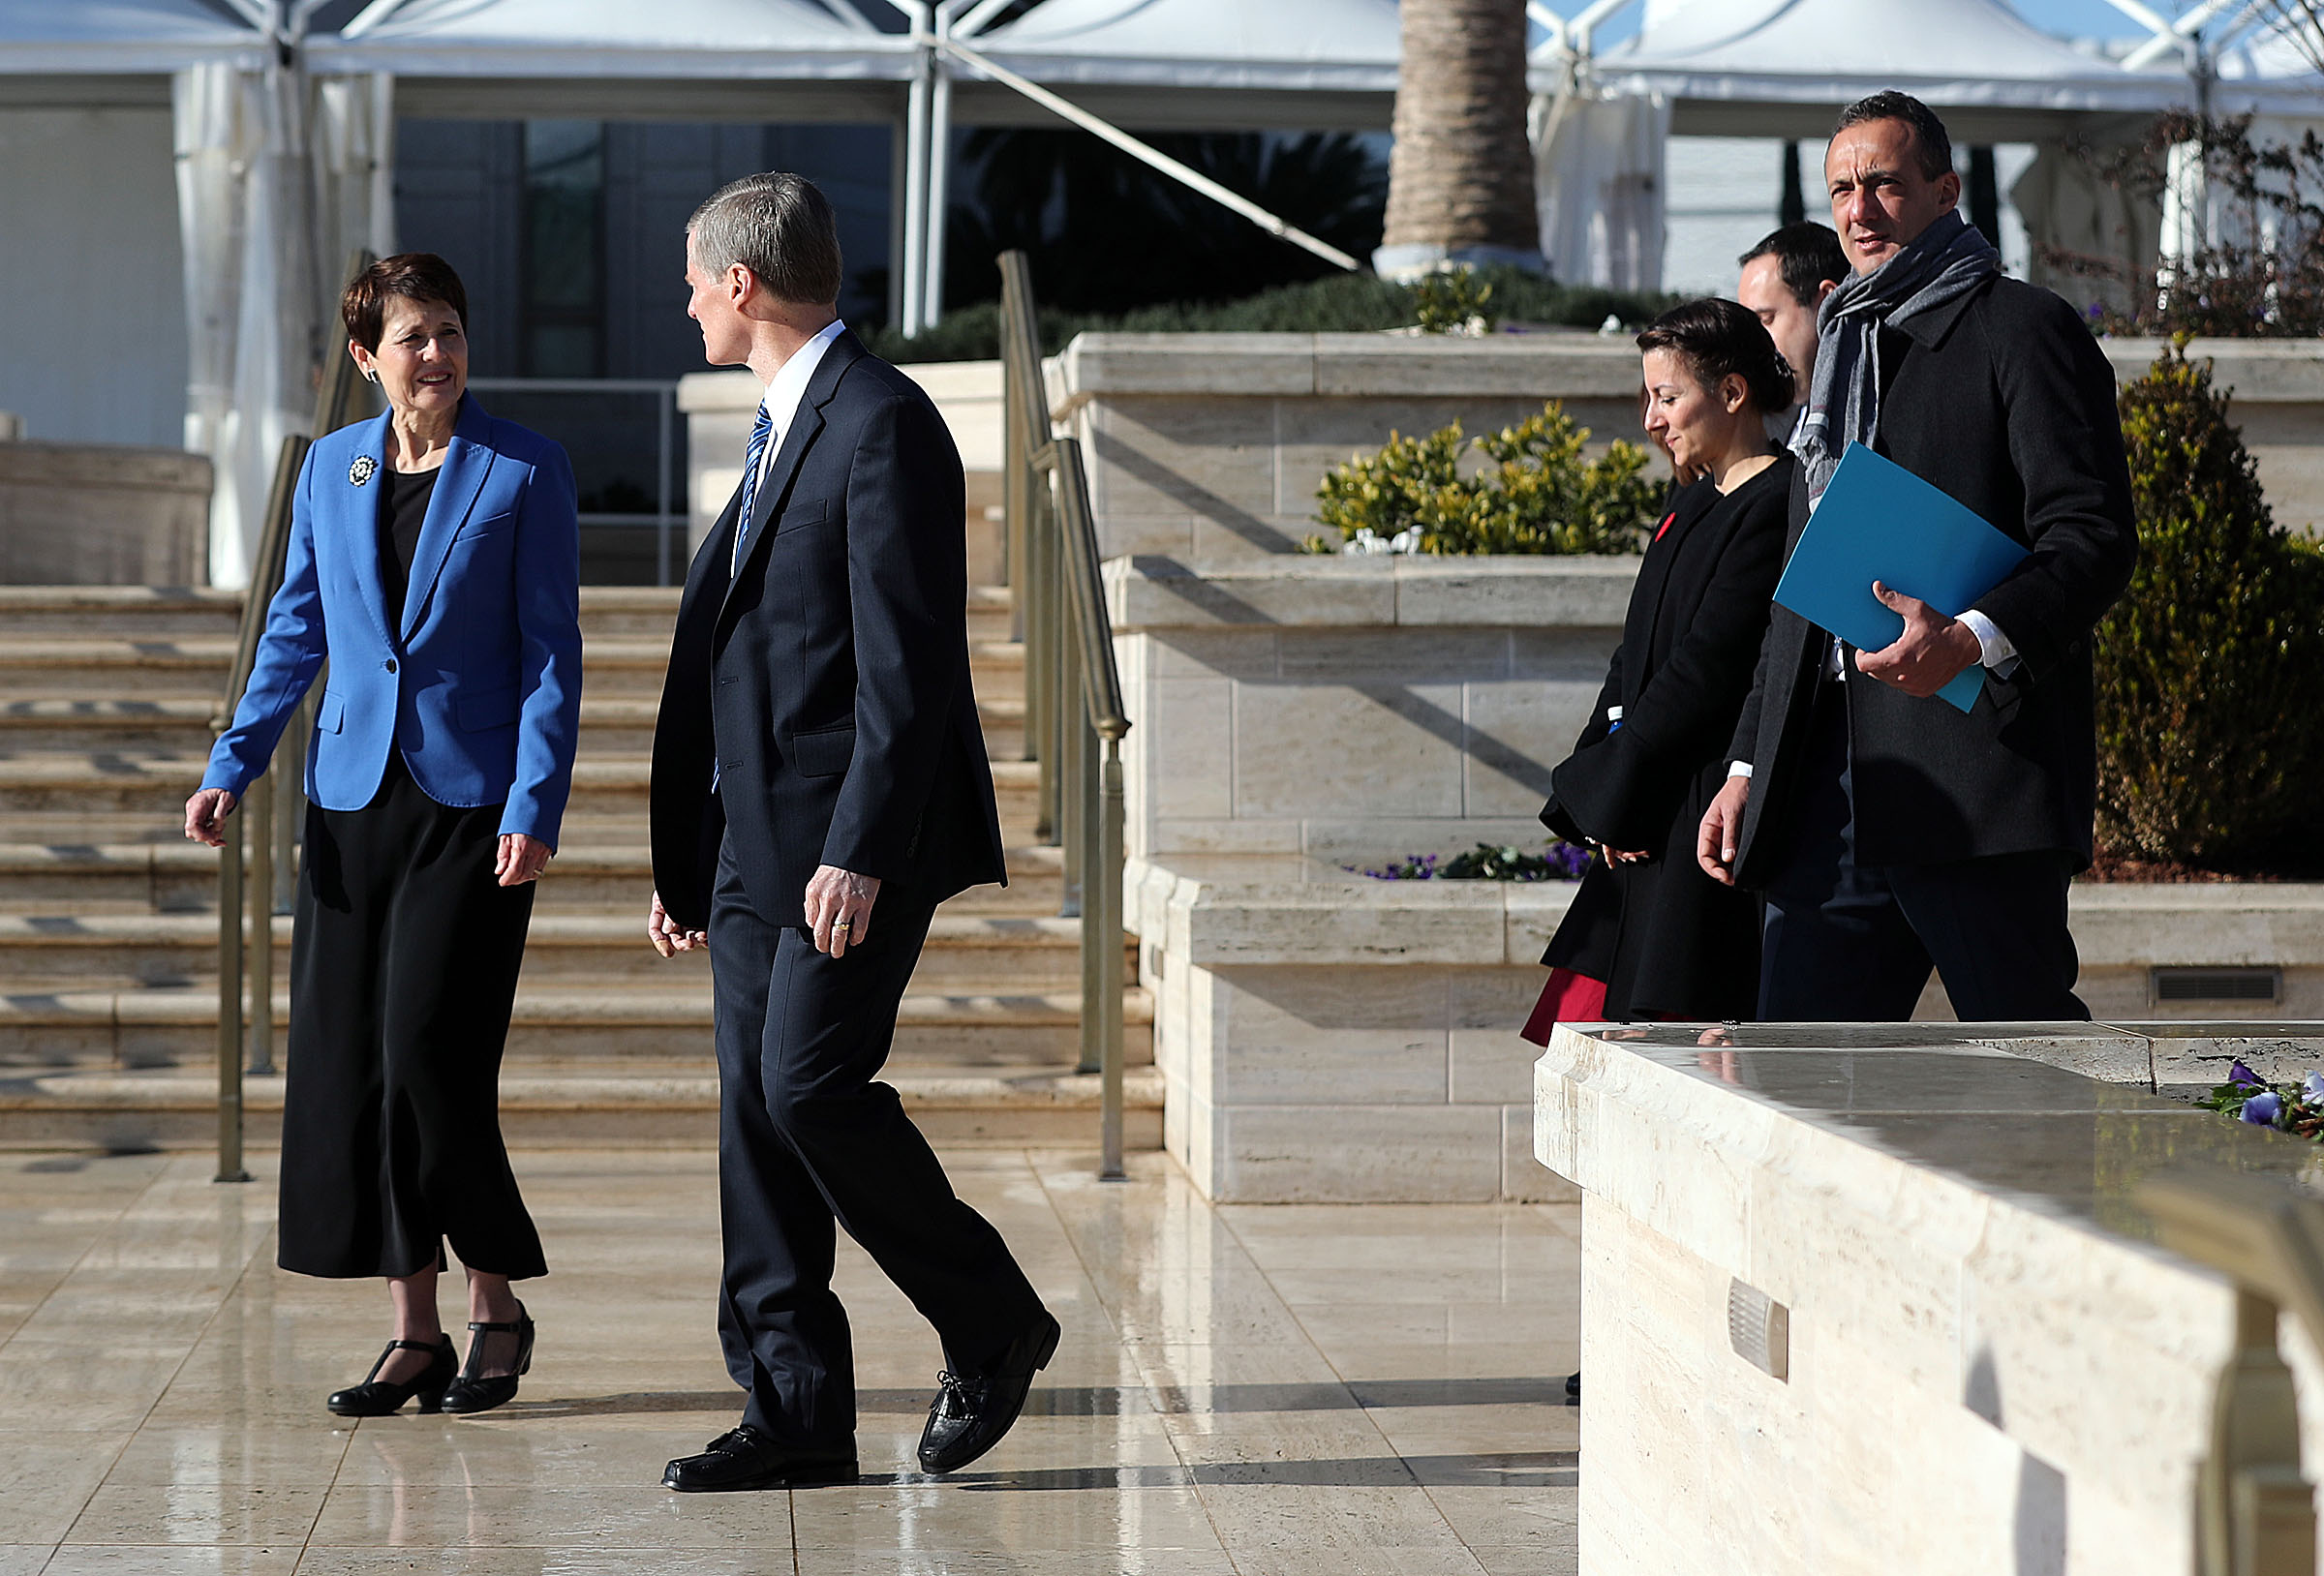 Elder David A. Bednar of the Quorum of the Twelve Apostles of The Church of Jesus Christ of Latter-day Saints and his wife, Sister Susan Bednar, guide a tour of local city officials and dignitaries during the Rome Italy Temple open house on Monday, Jan. 14, 2019. At right is President Marcello De Vito, president of the Rome City Council.